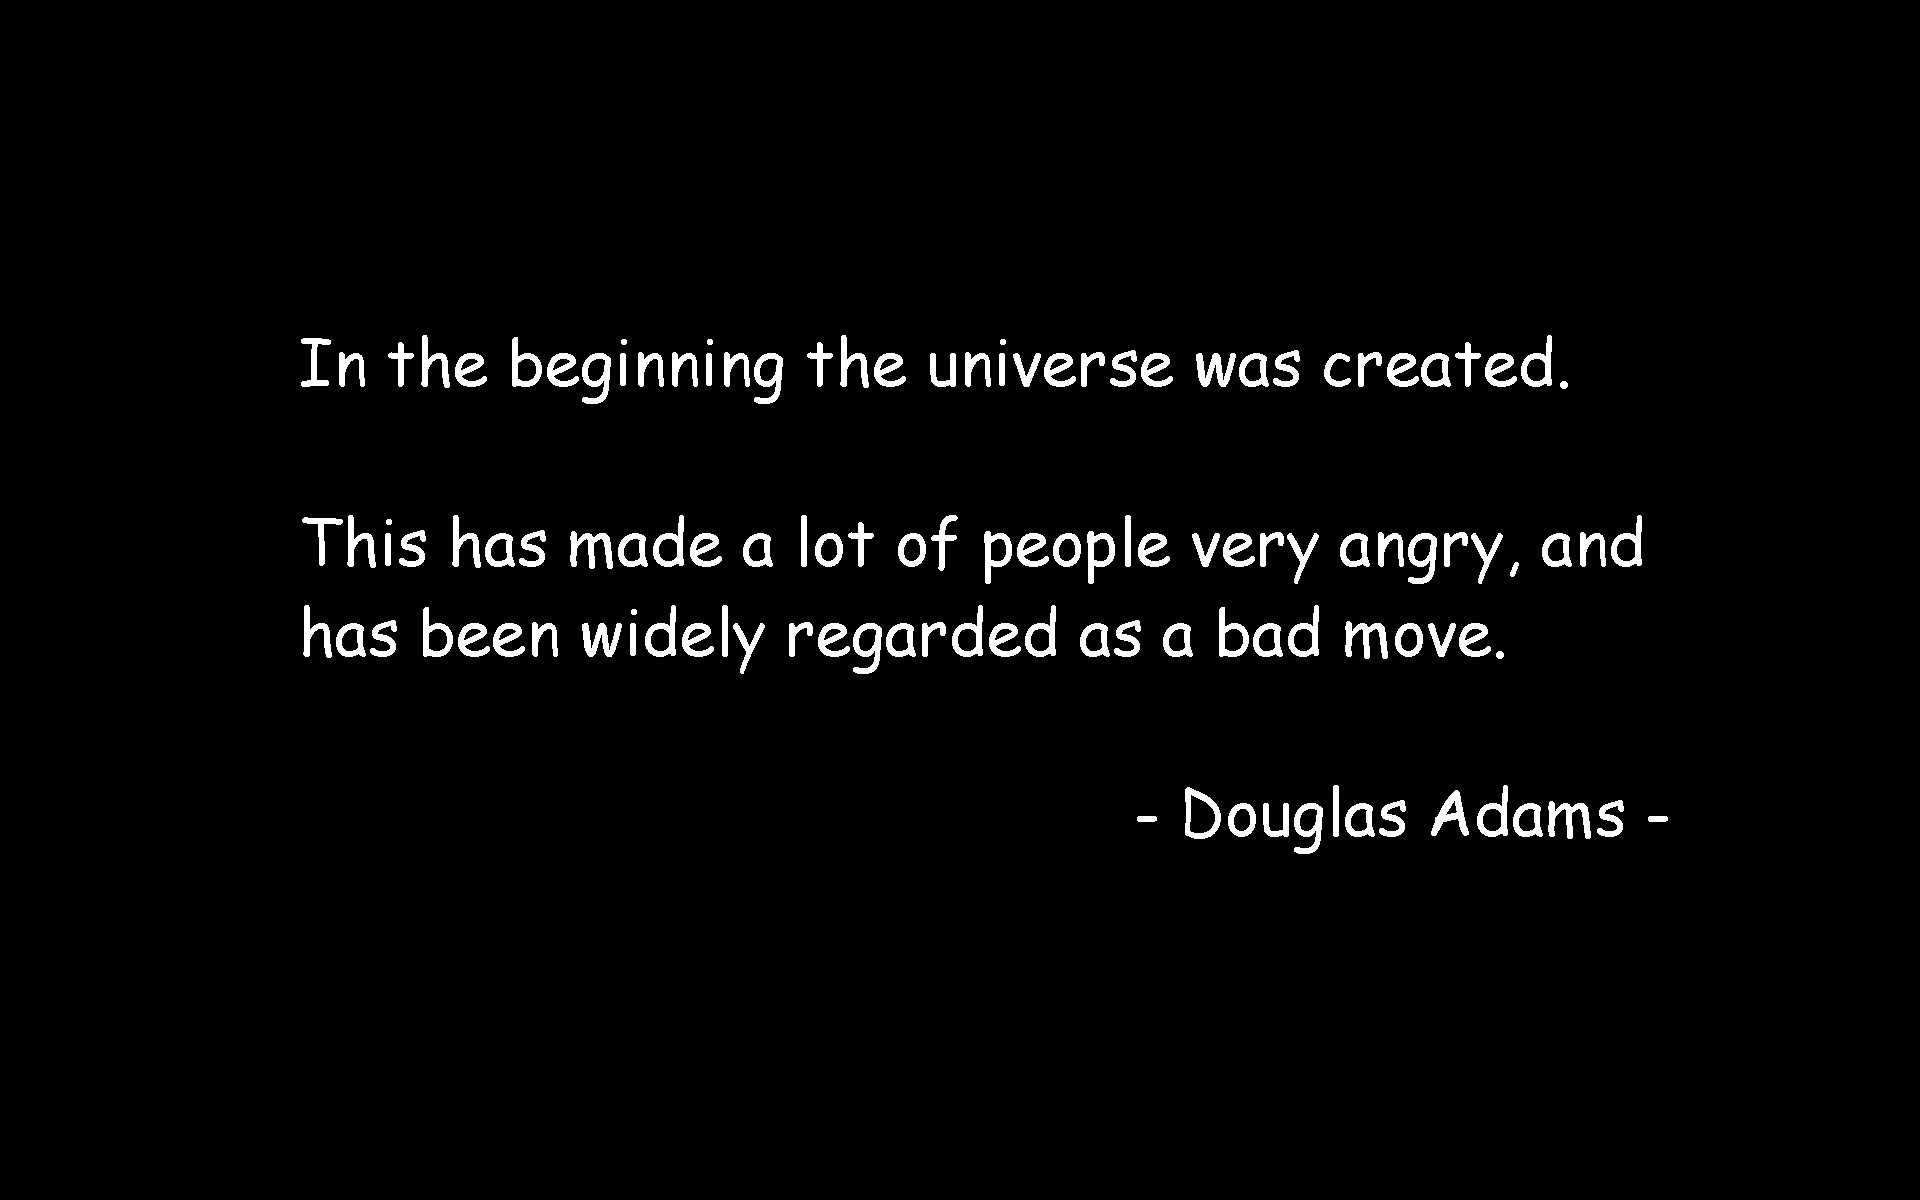 outer space Quotes Douglas HD Wallpaper